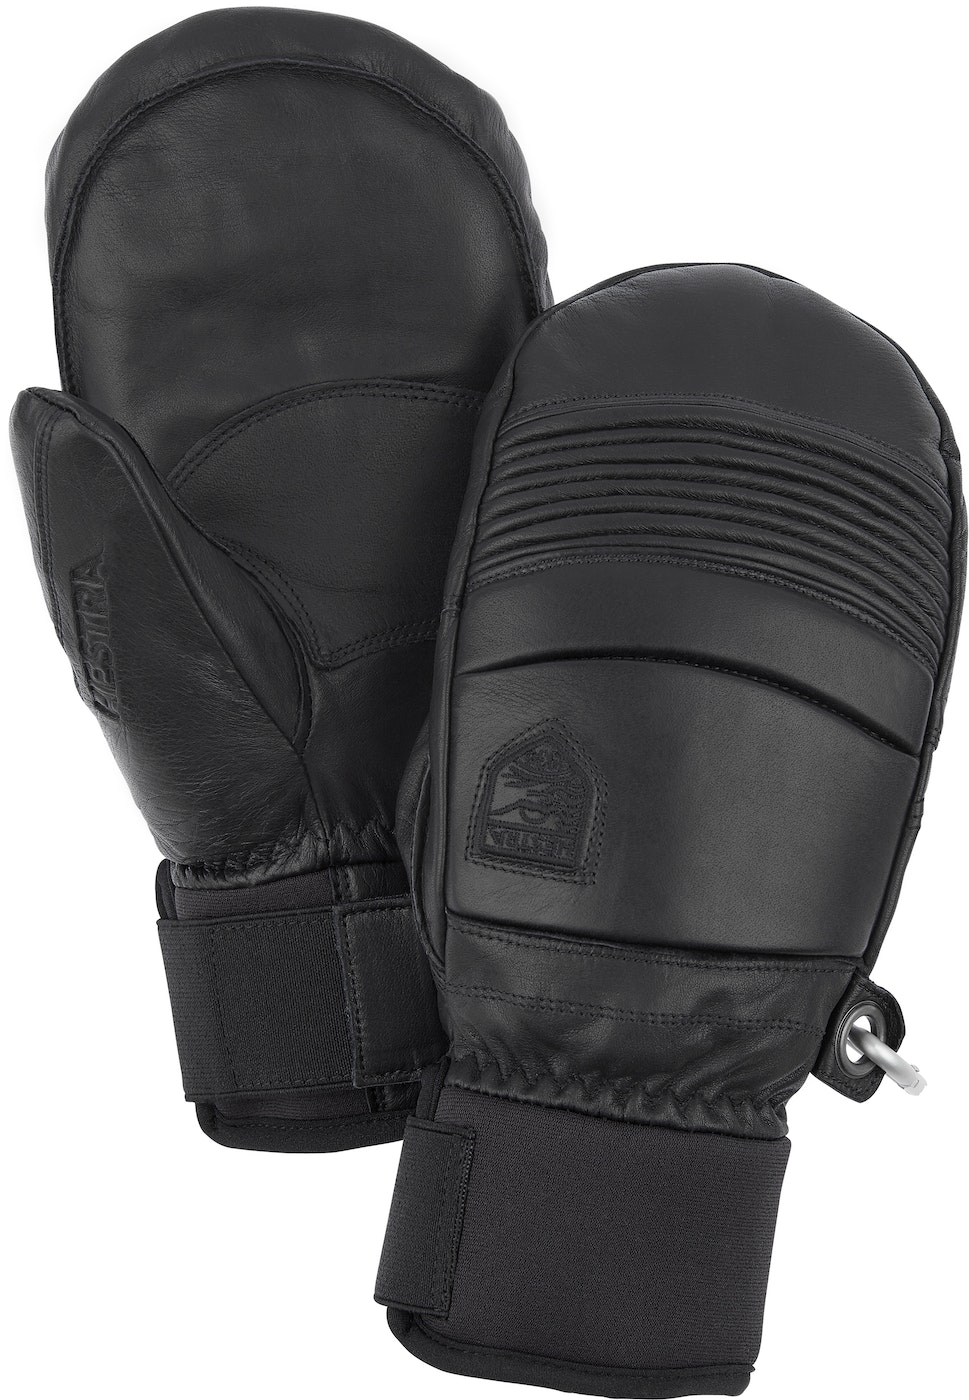 Product image for 31471 Leather Fall Line